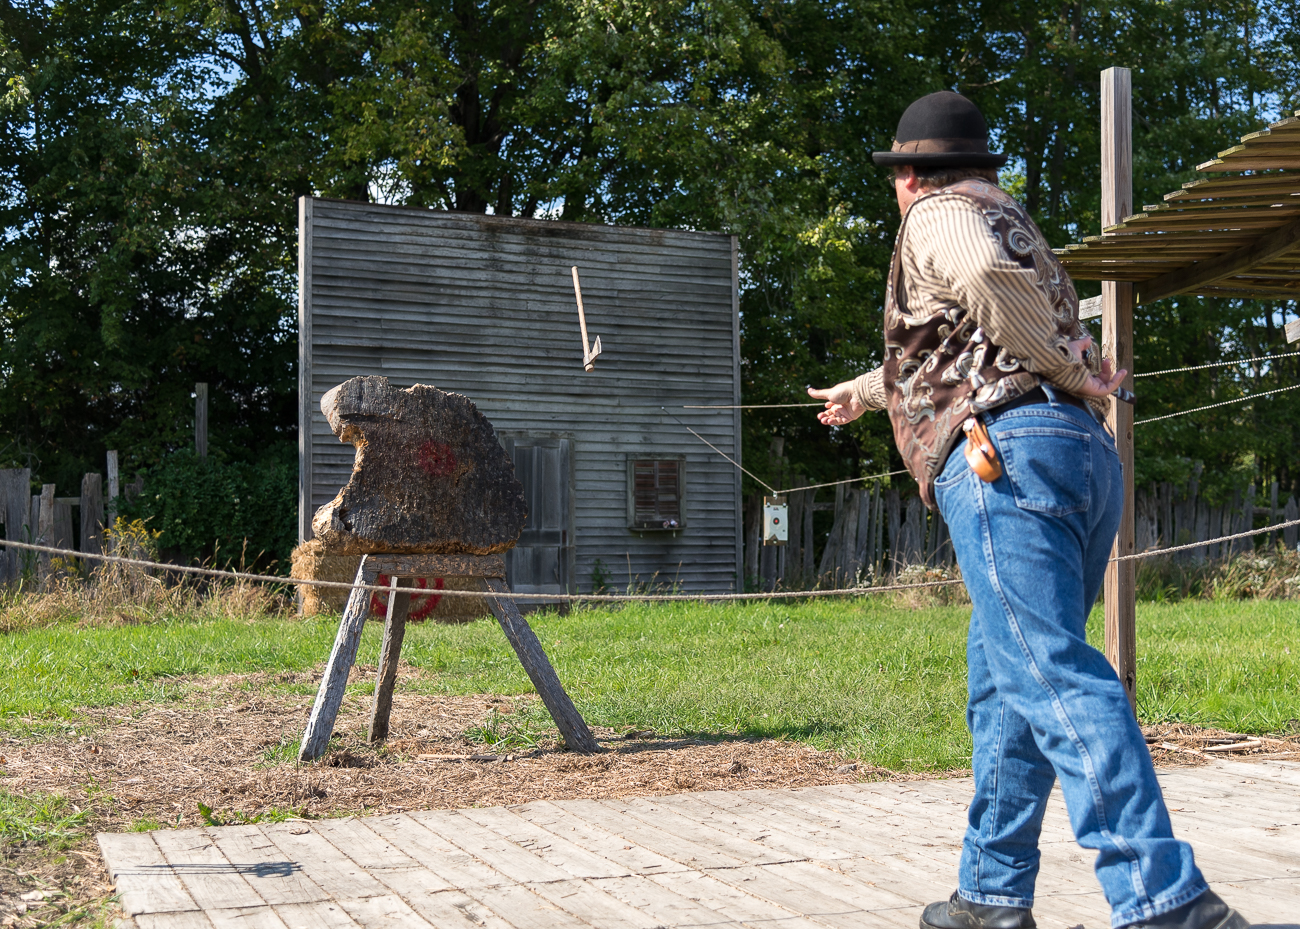 Now in its 11th year, the Old West Fest runs until October 14. The weekly event features outlaws slinging guns in the street, period-appropriate comedy shows, vaudeville acts, vendors of handmade goods, horse riding, and other unique performances inspired by 19th century America. ADDRESS: 1449 Greenbush Cobb Rd (45176) / Image: Phil Armstrong, Cincinnati Refined // Published: 10.8.18